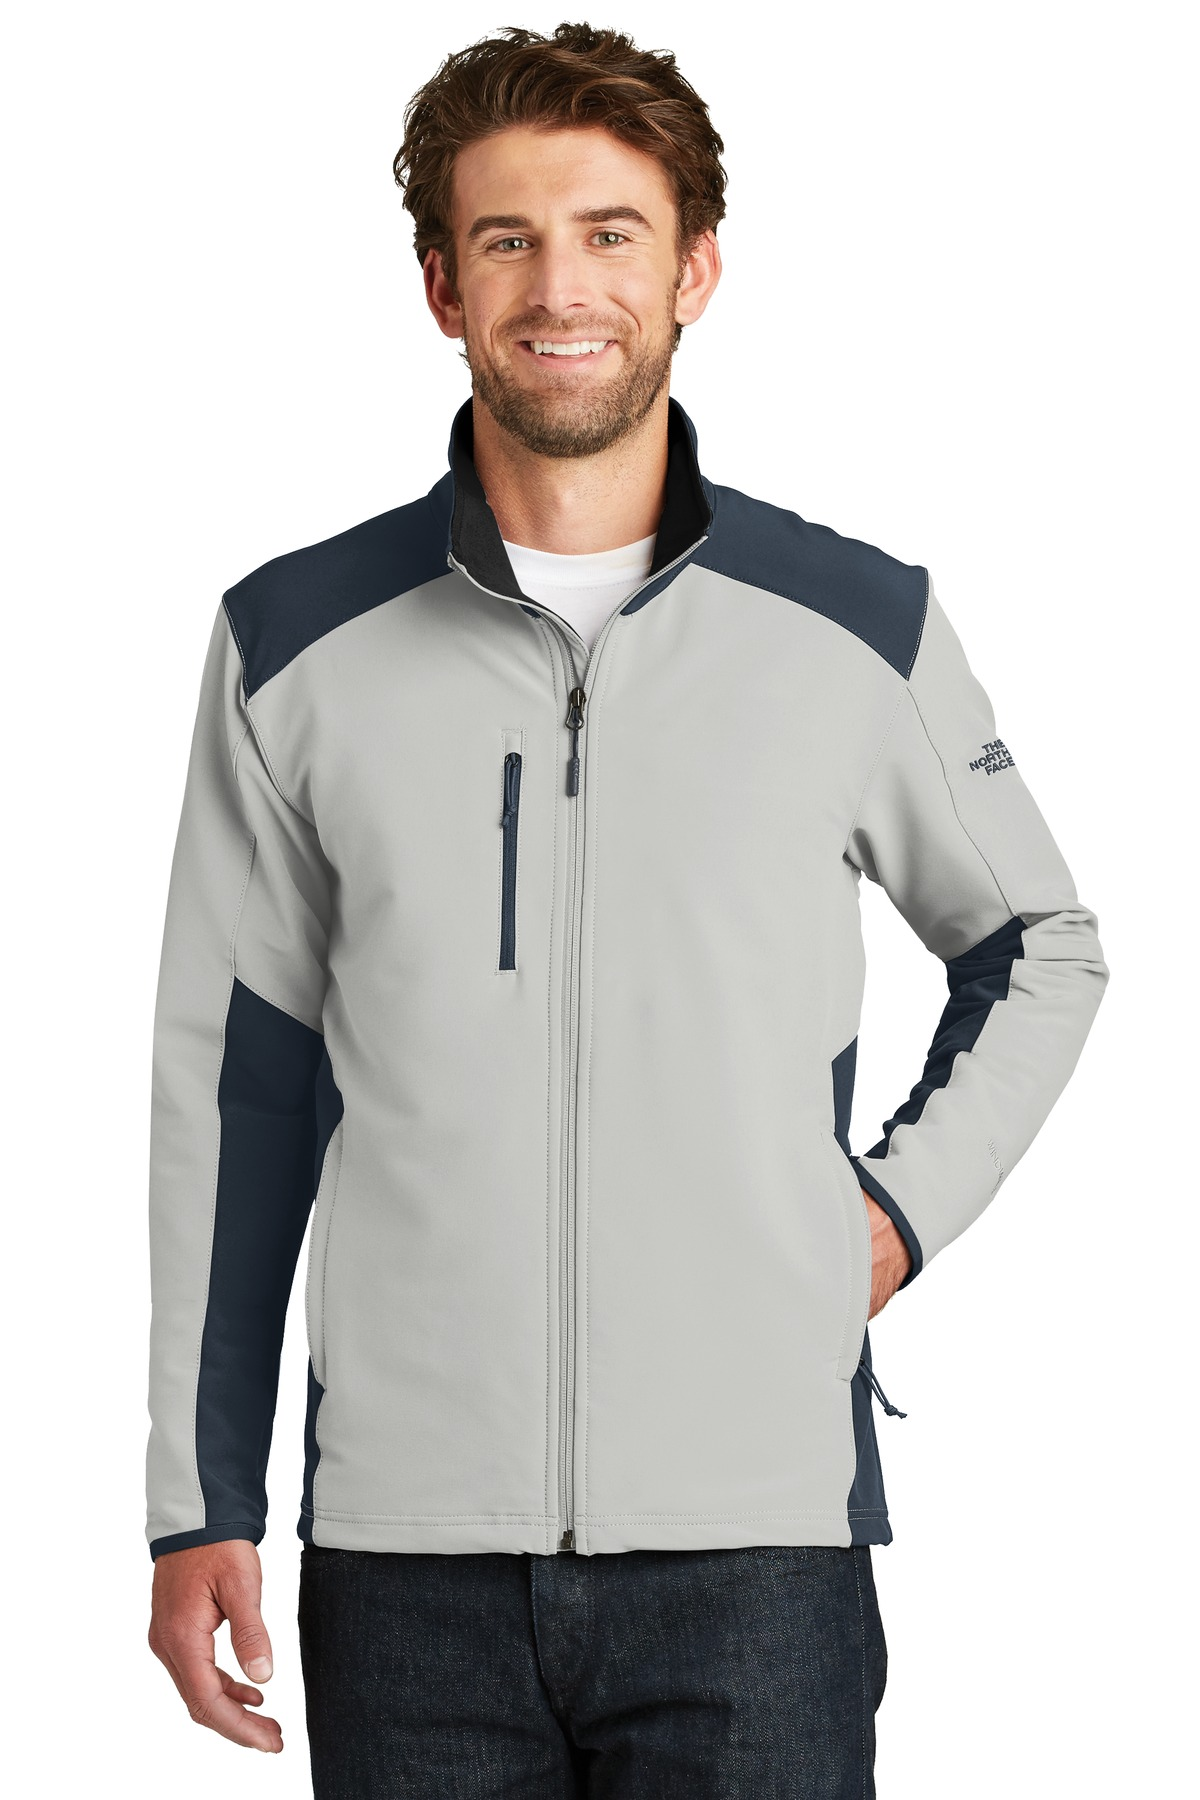 The North Face  ®  Tech Stretch Soft Shell Jacket. NF0A3LGV - Mid Grey/ Urban Navy